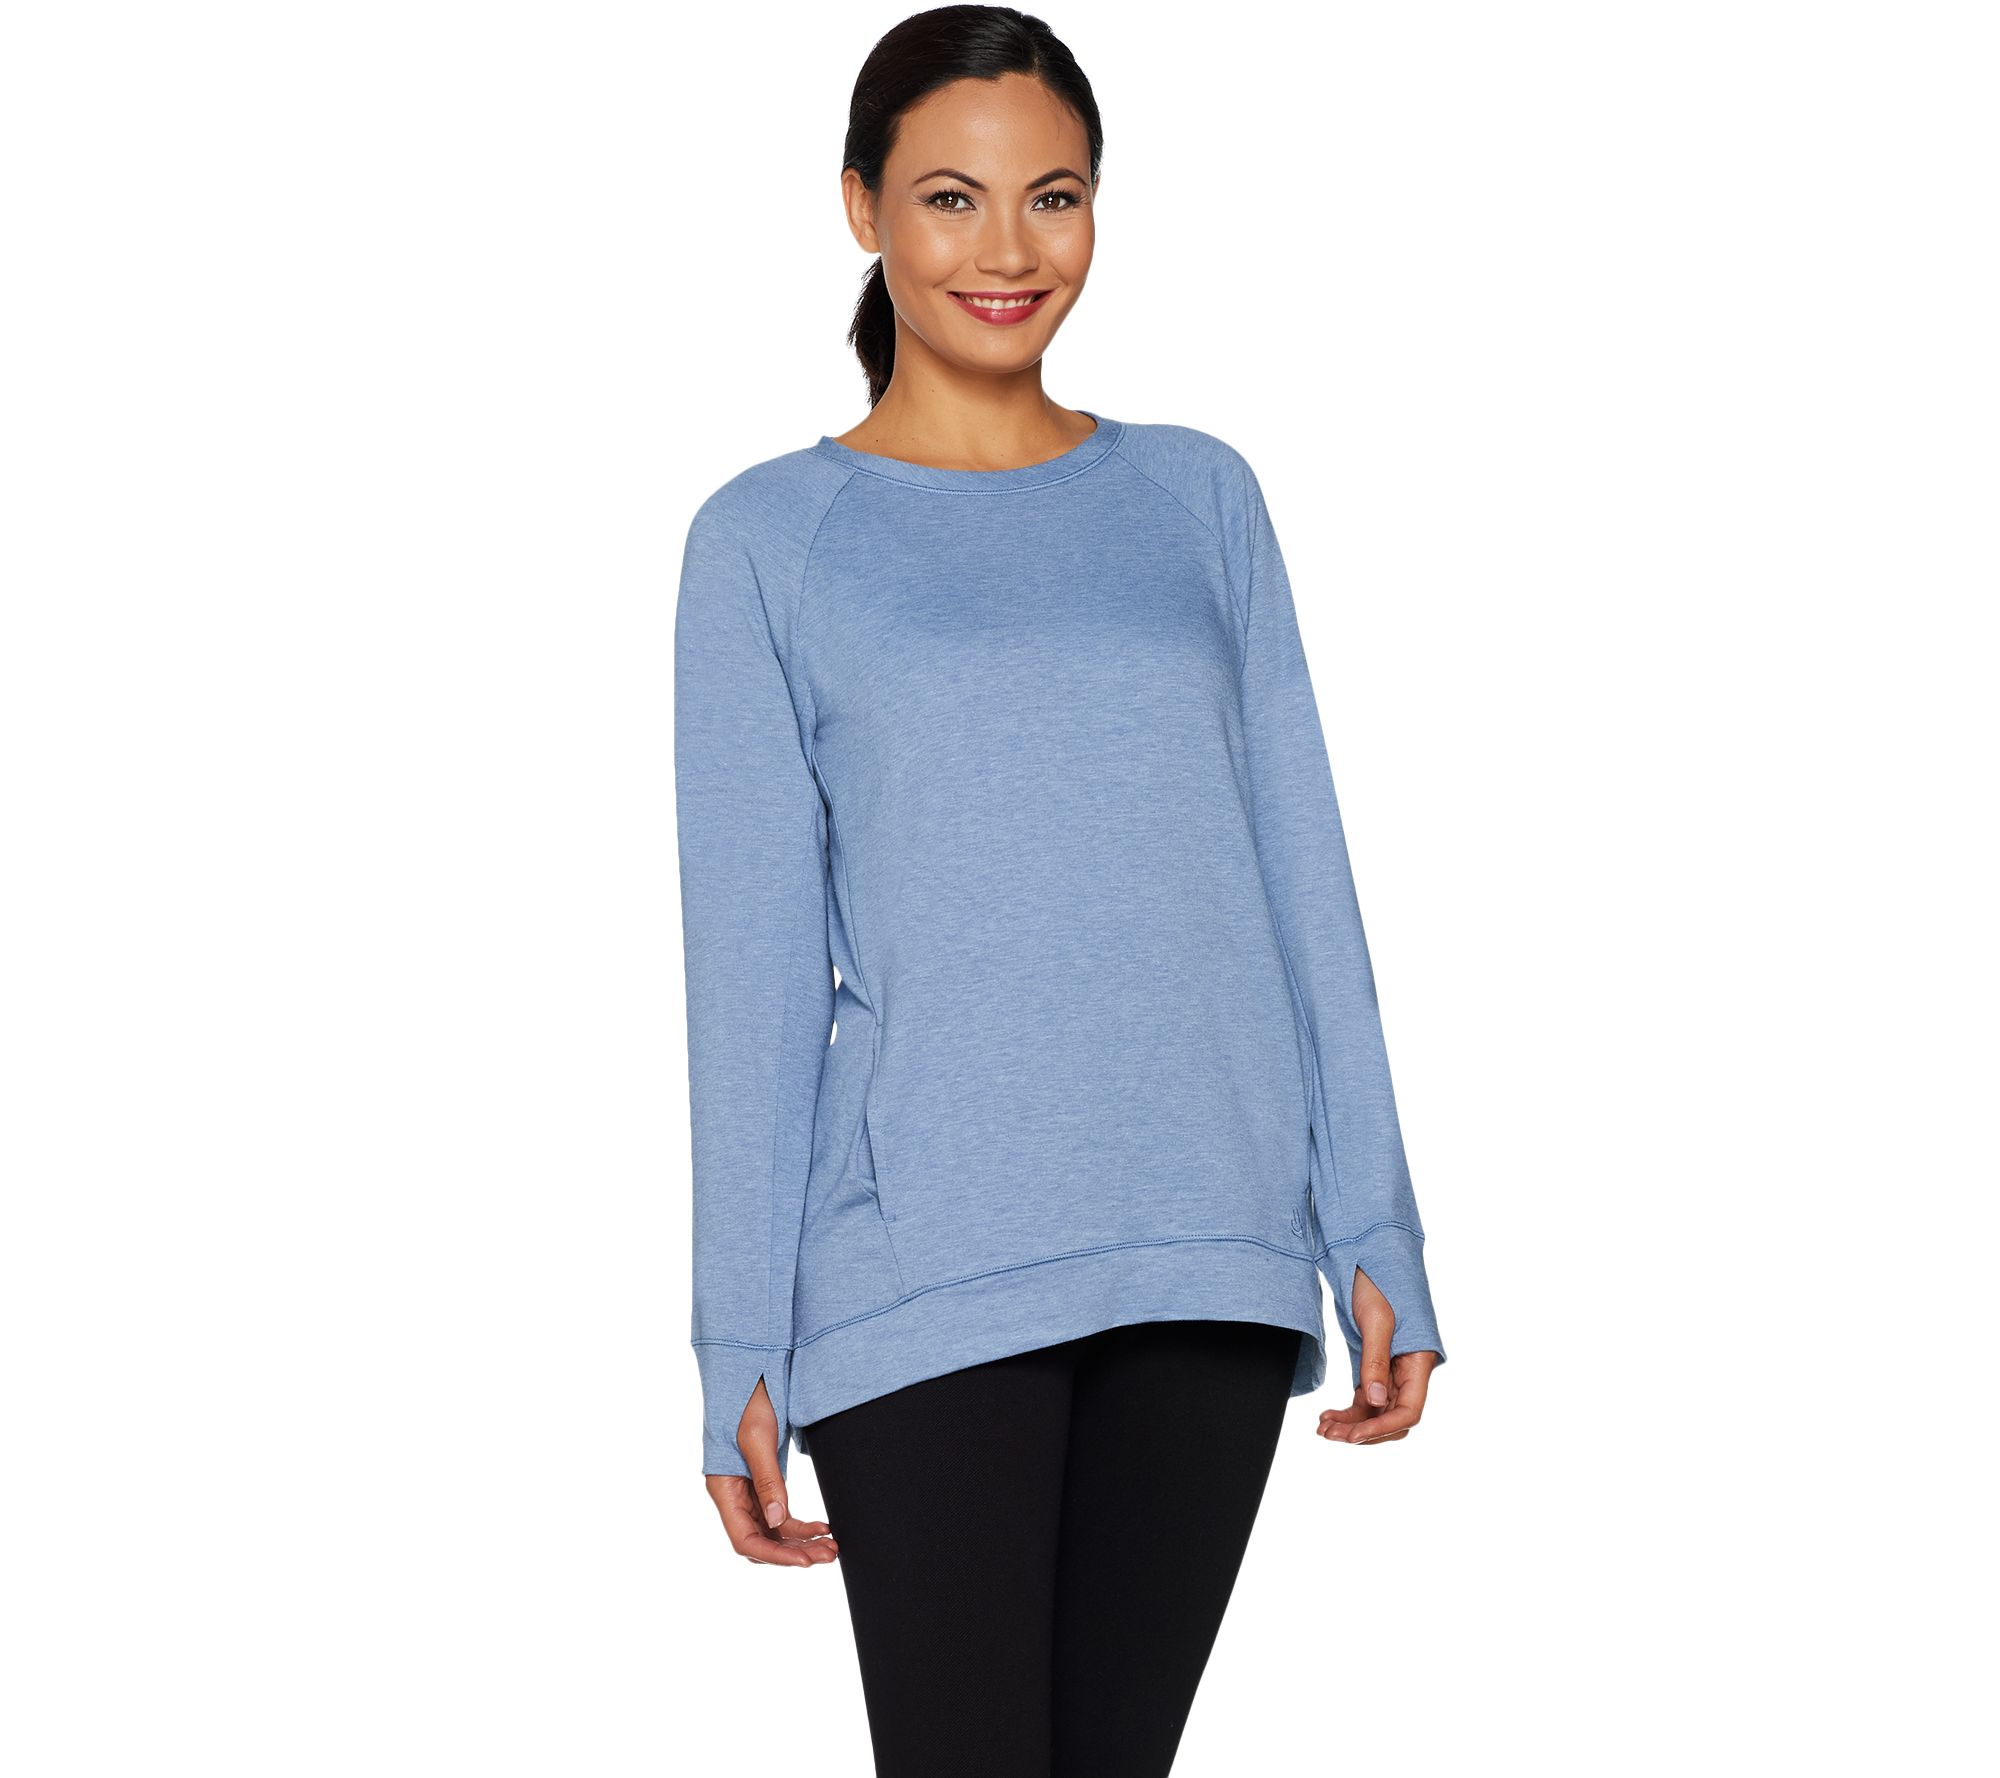 6692b35f4e4c3 Cuddl Duds Comfortwear French Terry Raglan Sleeve Pullover Top - Page 1 —  QVC.com